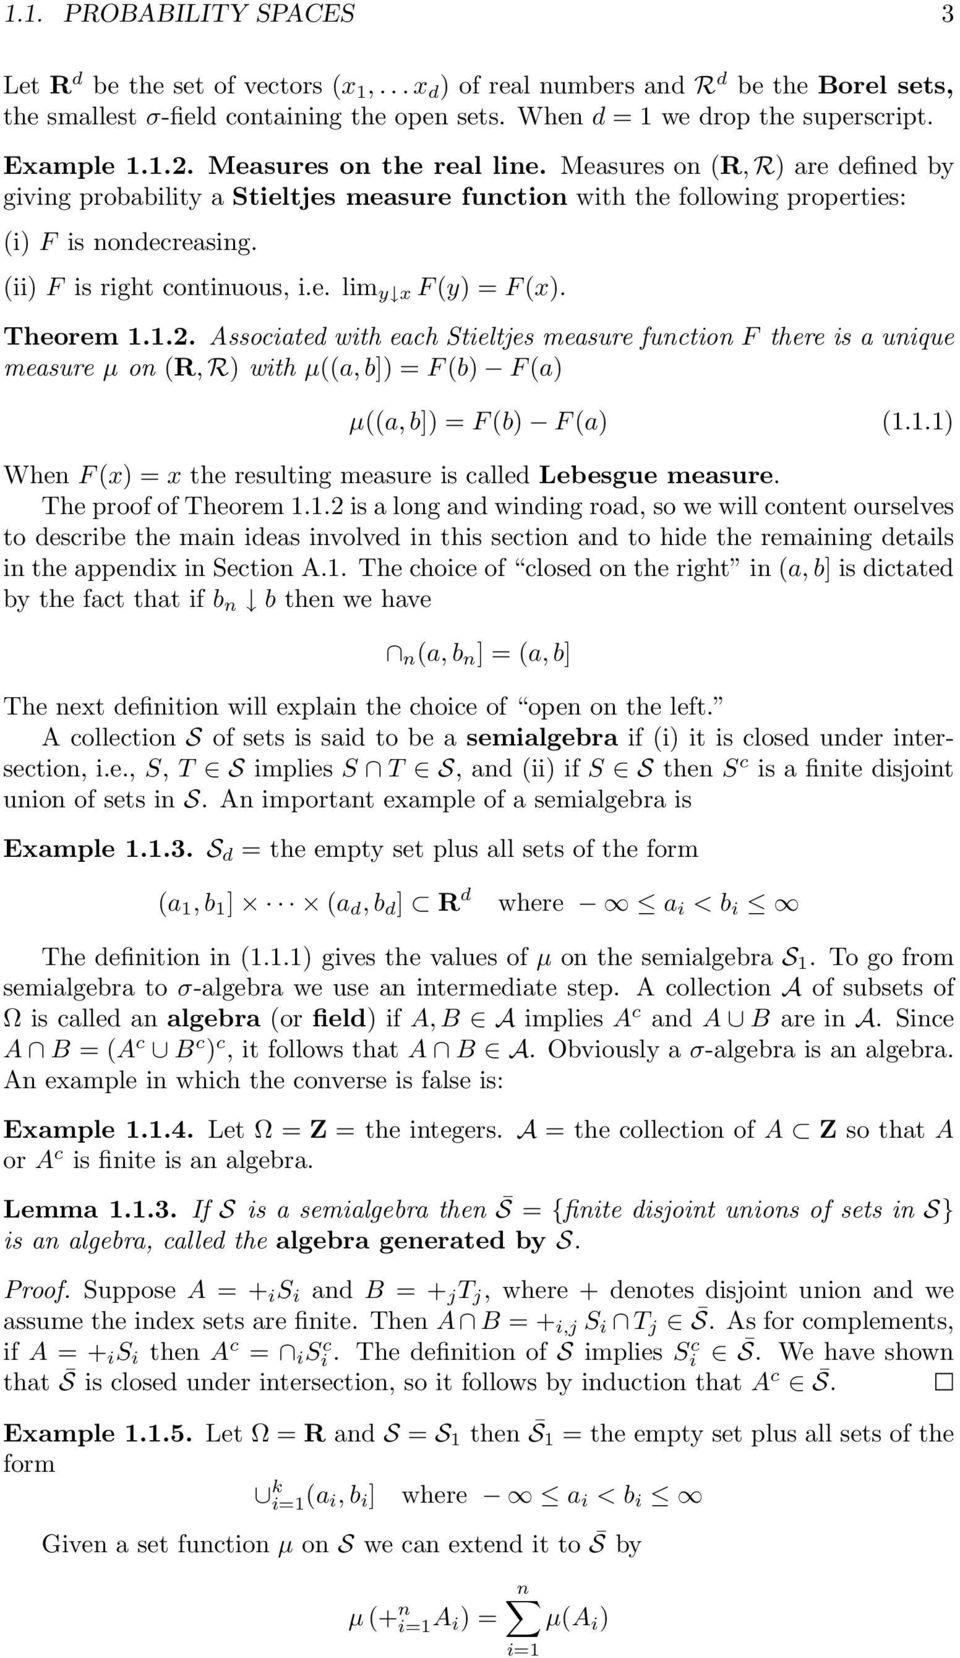 (ii) F is right continuous, i.e. lim y x F (y) = F (x). Theorem 1.1.2.